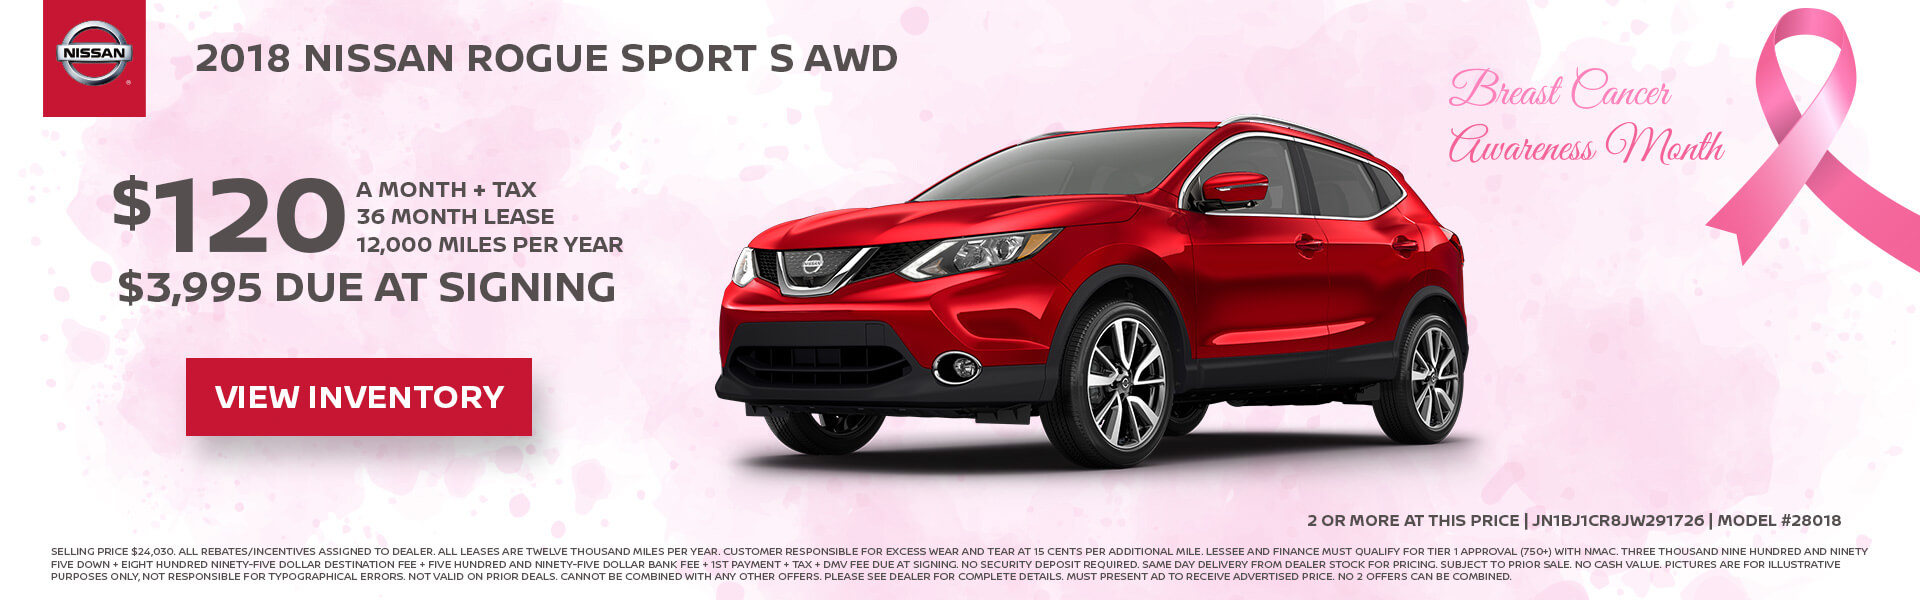 Nissan Rogue Sport $120 Lease